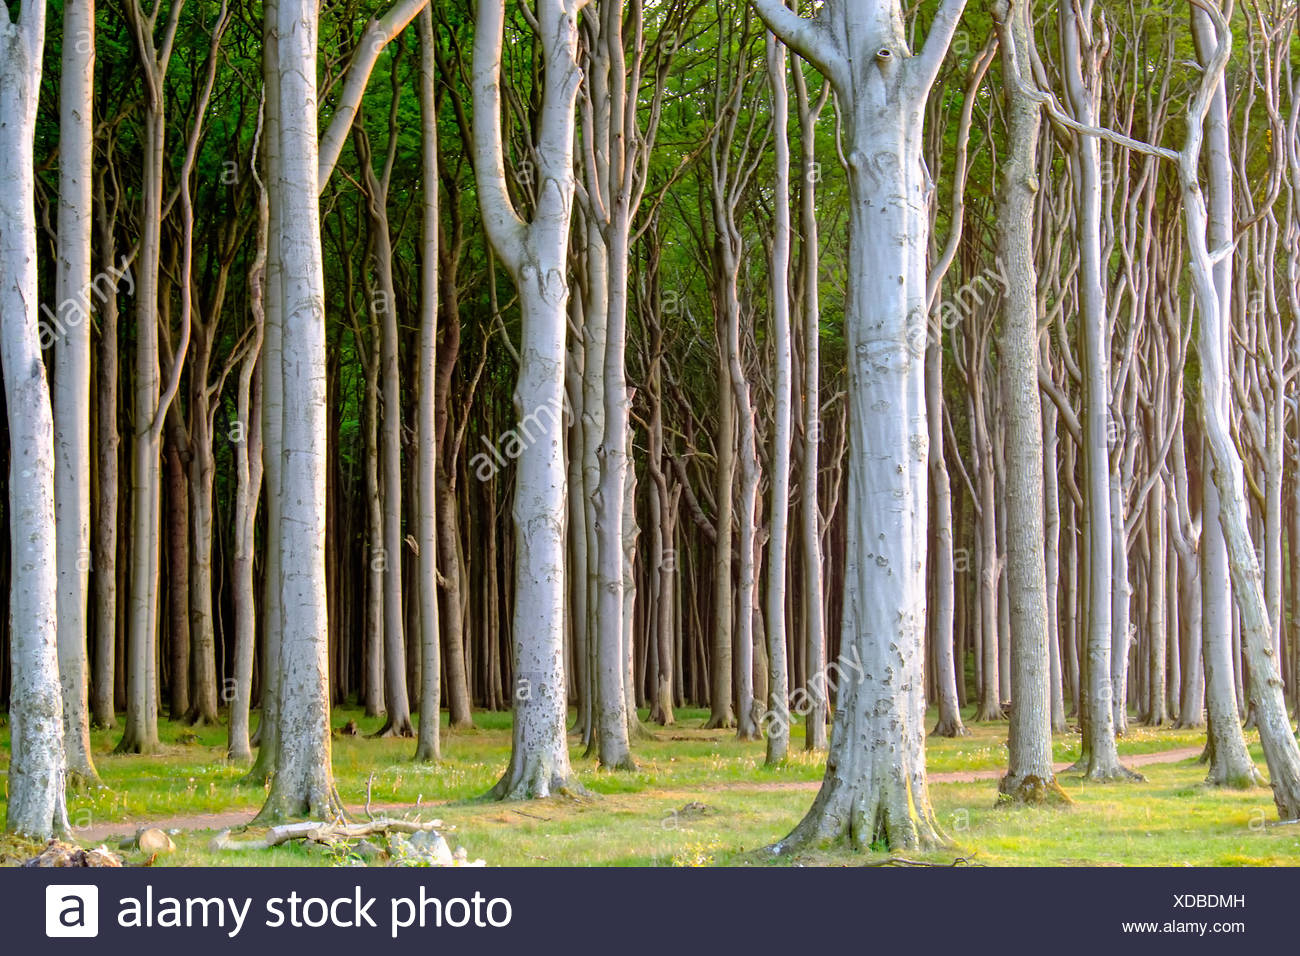 Haunted beech tree forest - Stock Image